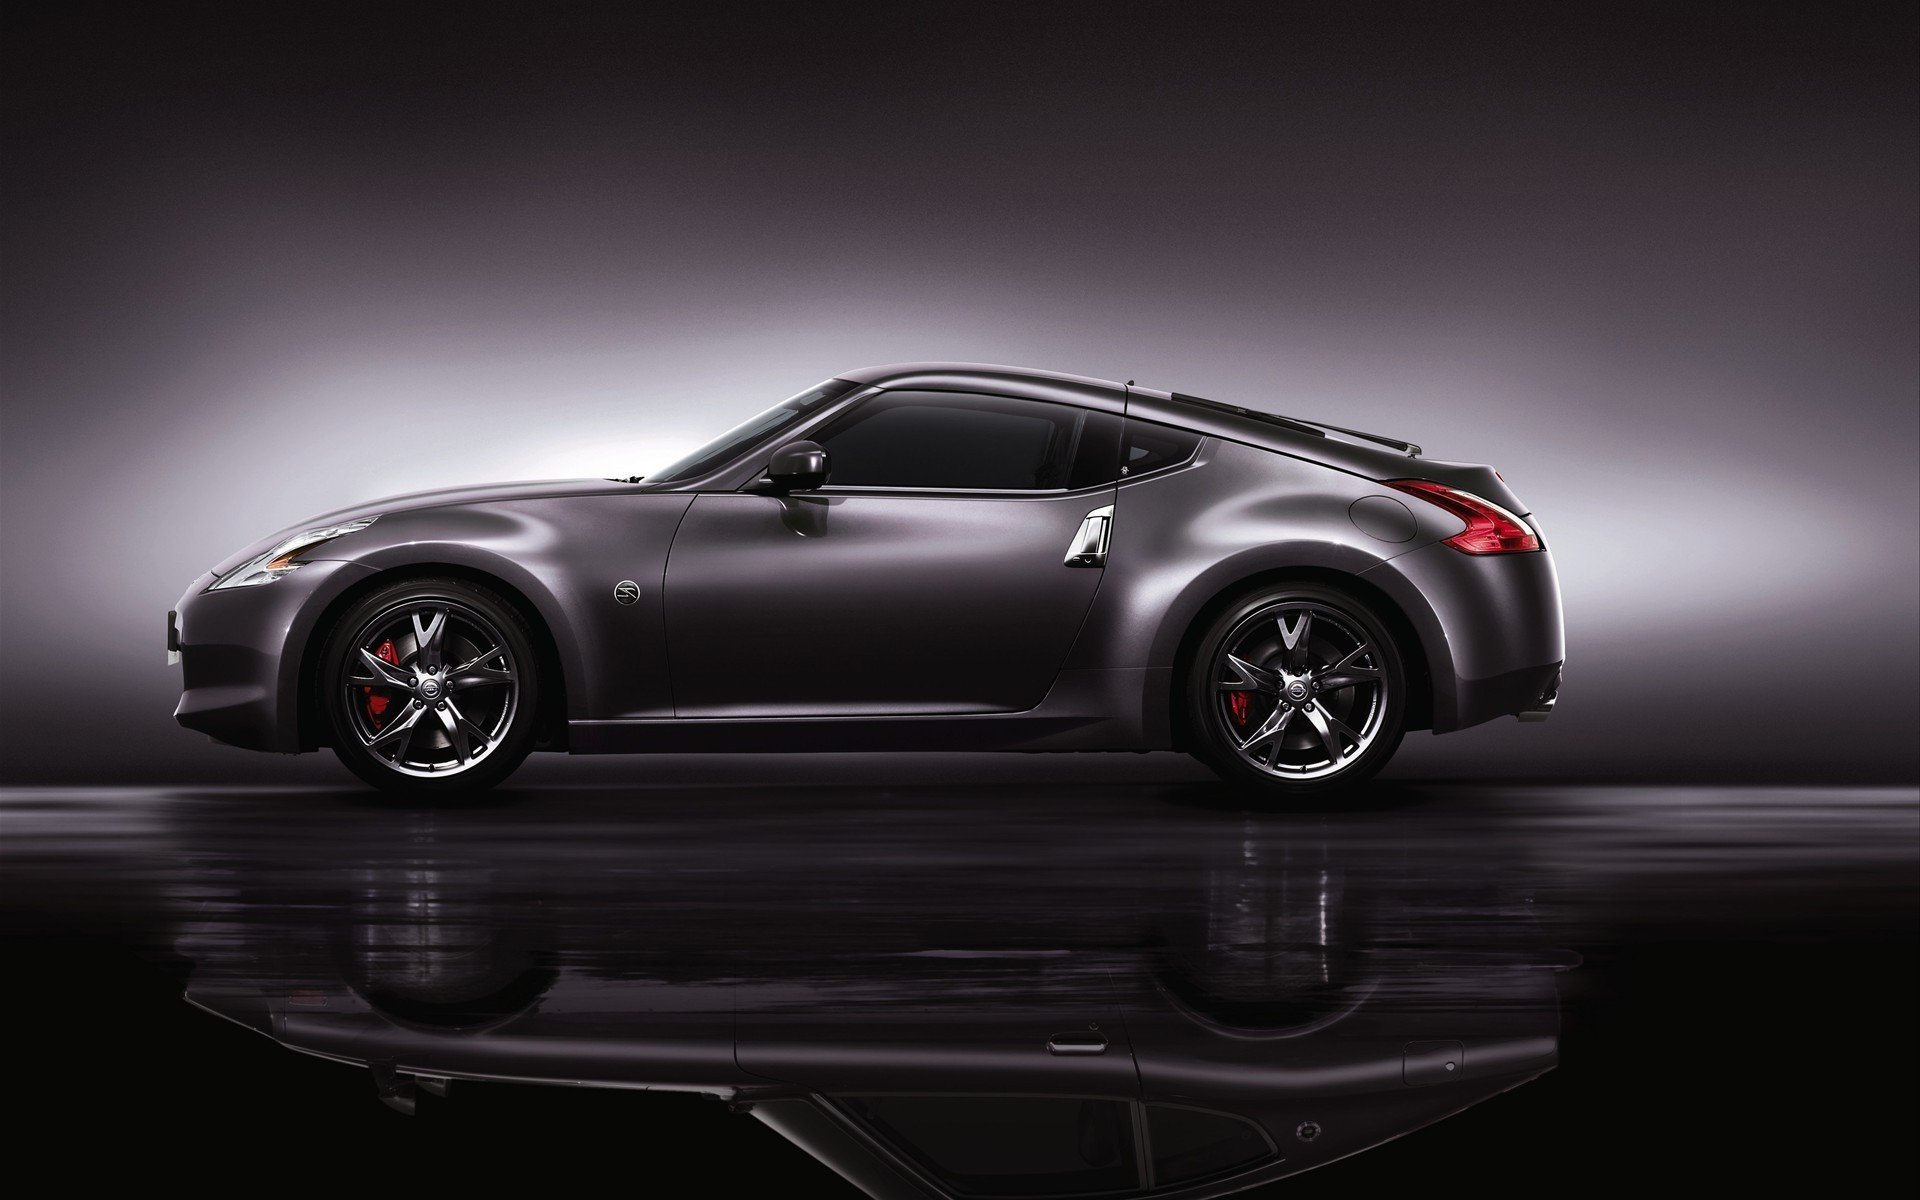 Download Nissan 370Z 1920x1200 Wallpaper 1920x1200